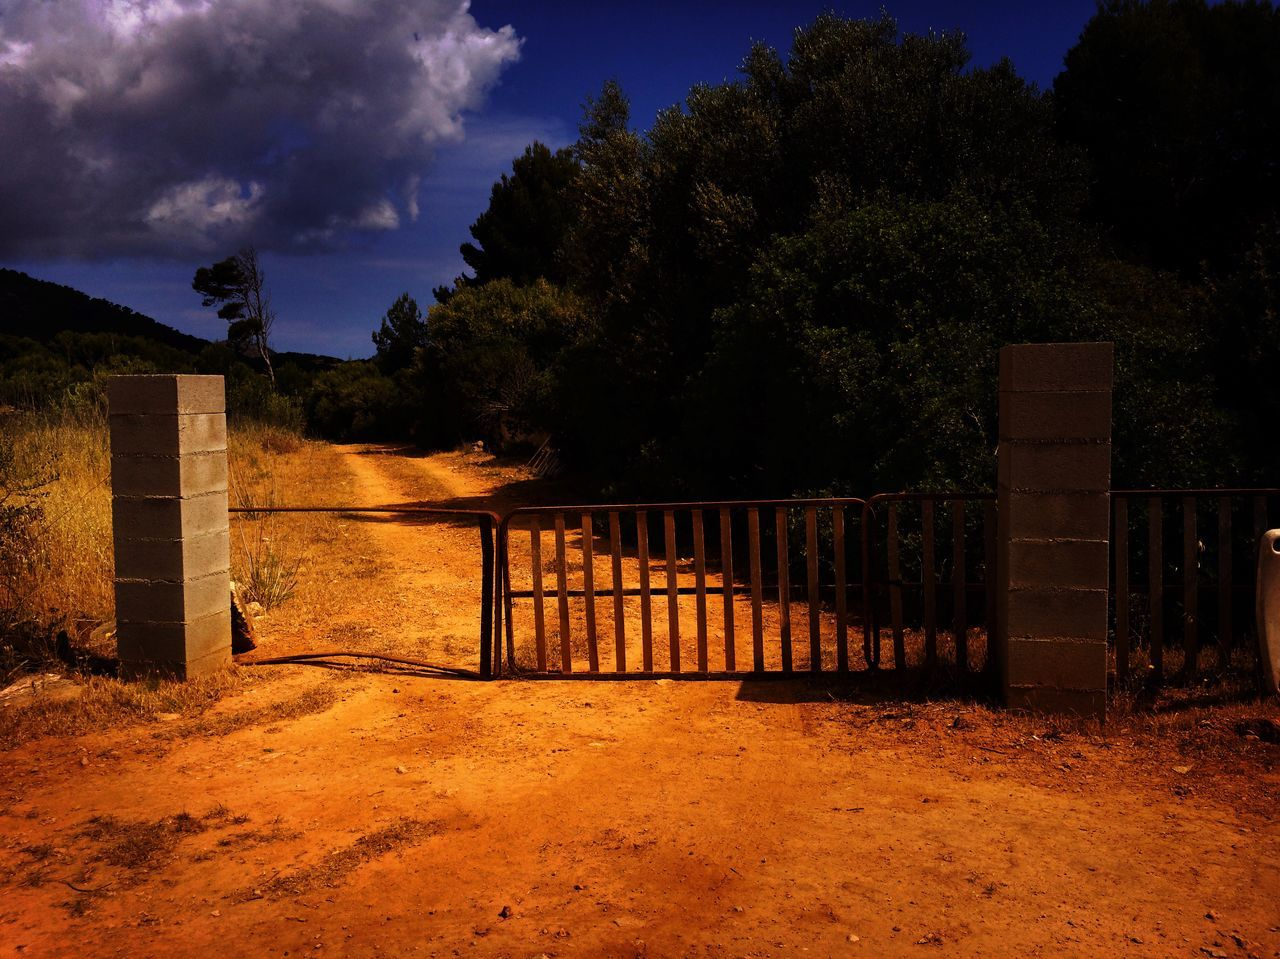 tree, gate, outdoors, sky, no people, architecture, nature, day